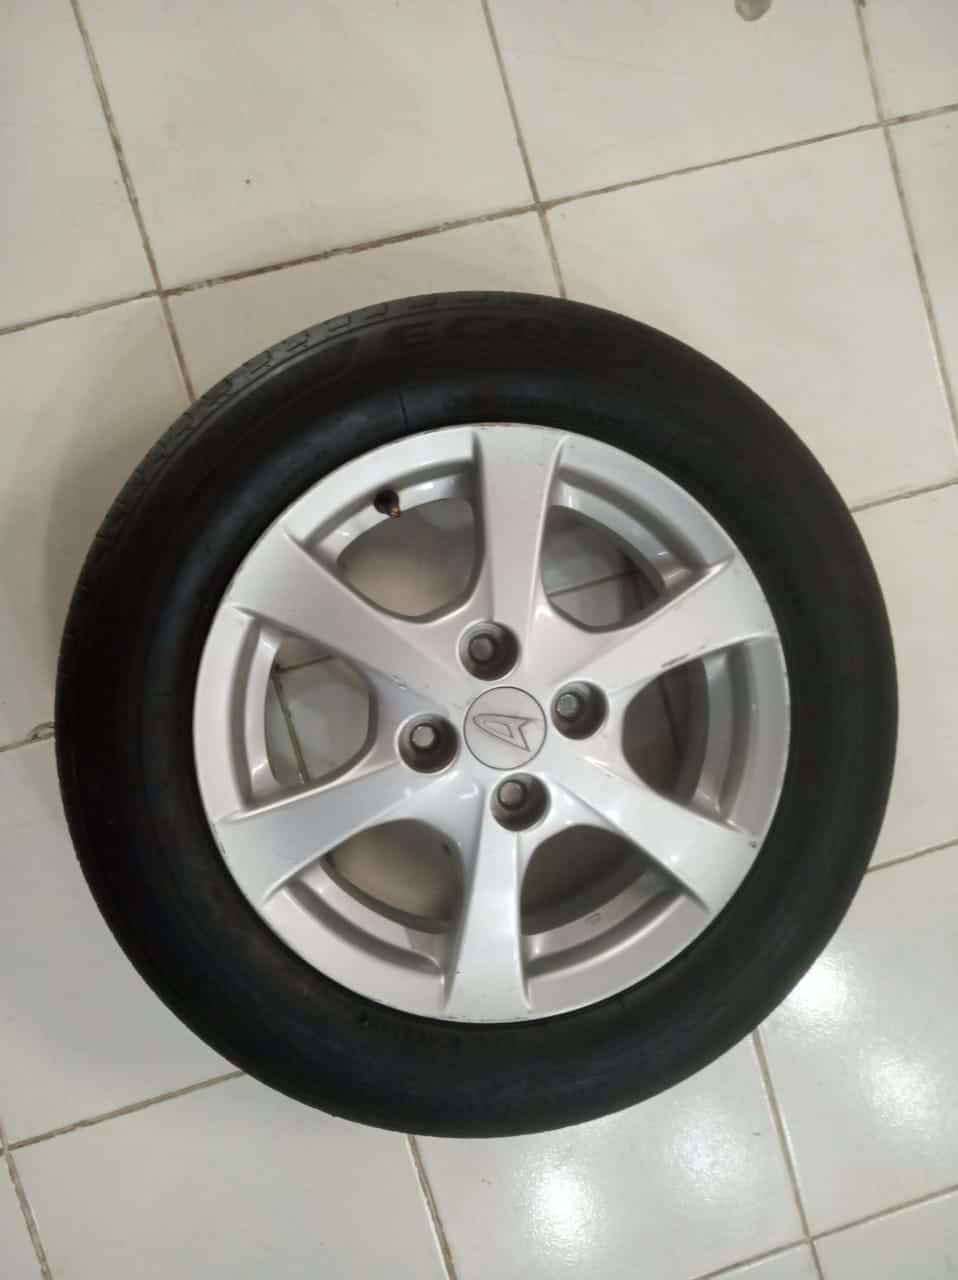 velg std murah ring 14 plus ban